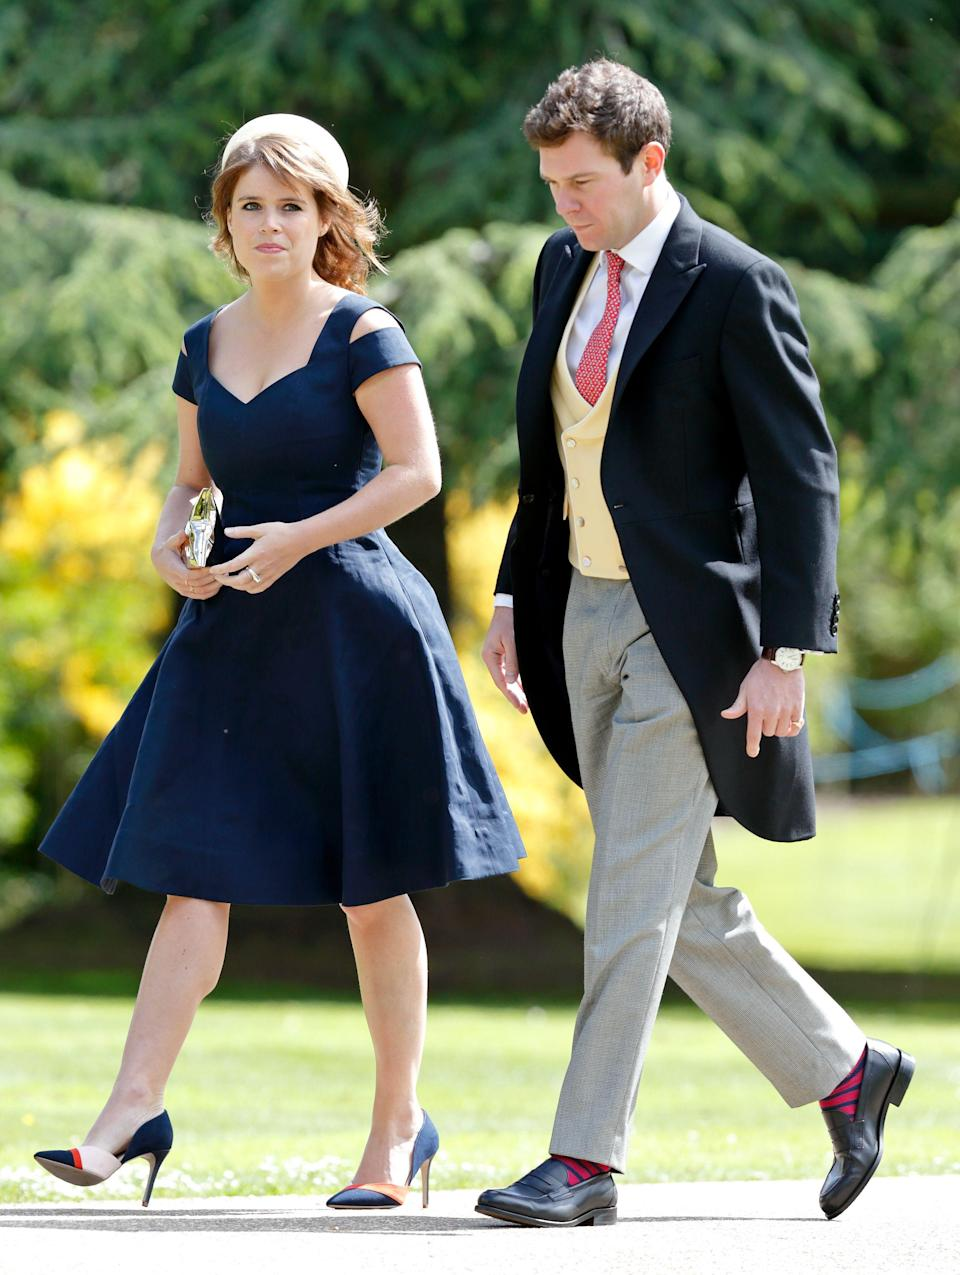 <p>The second royal wedding of the year calls for another list of celebrity guests. We've put together a list of notable names, from friends to work colleagues, who might be in attendance on Princess Eugenie's special day. </p>